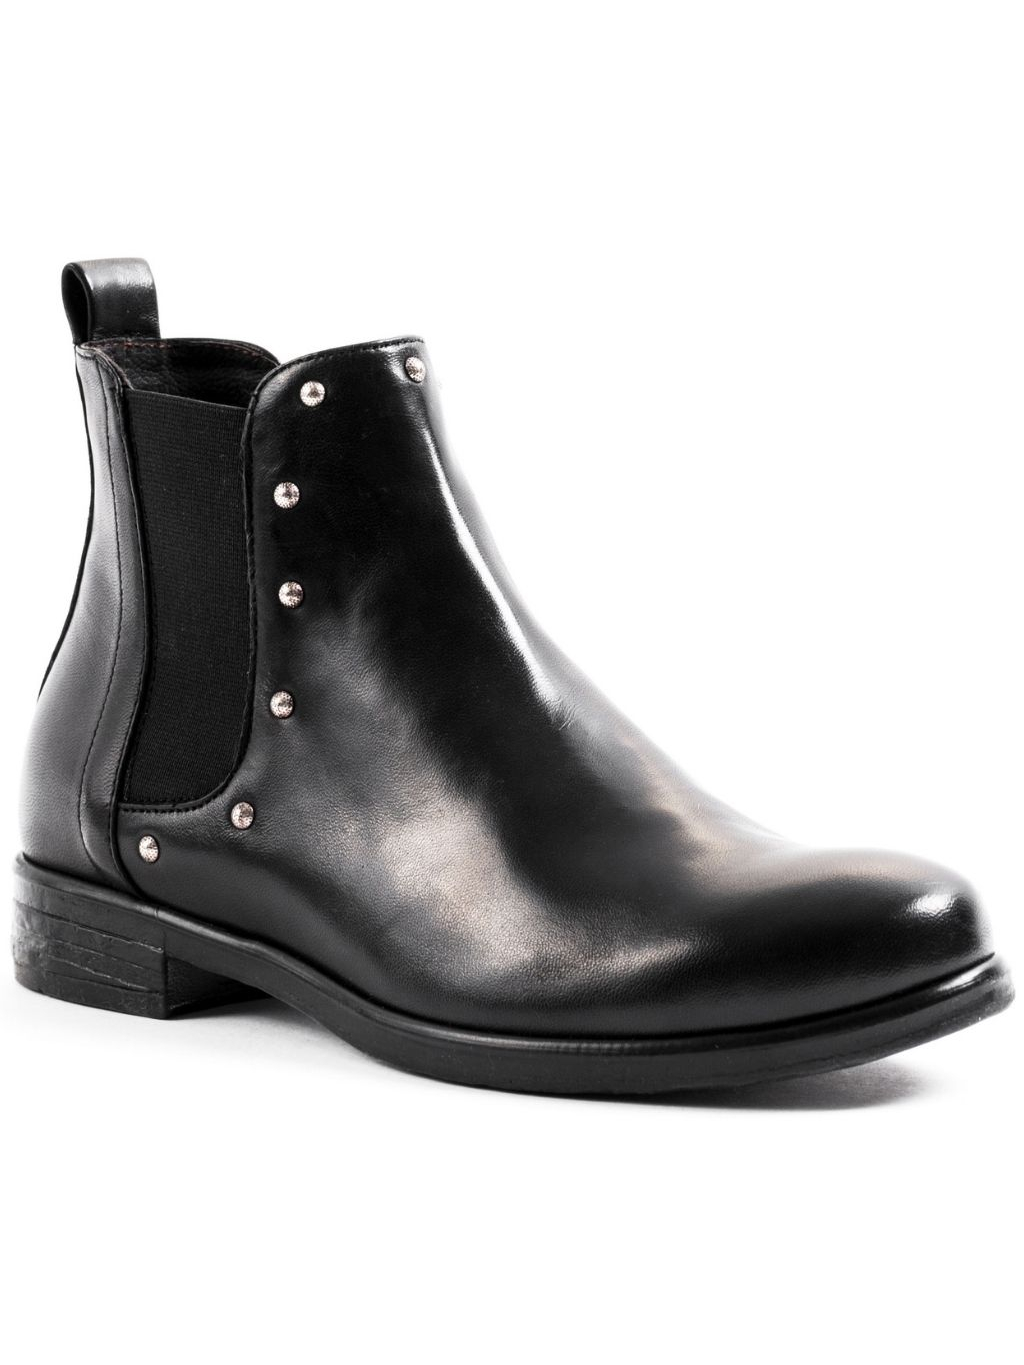 Manas Tomaia chelsea boots (4)